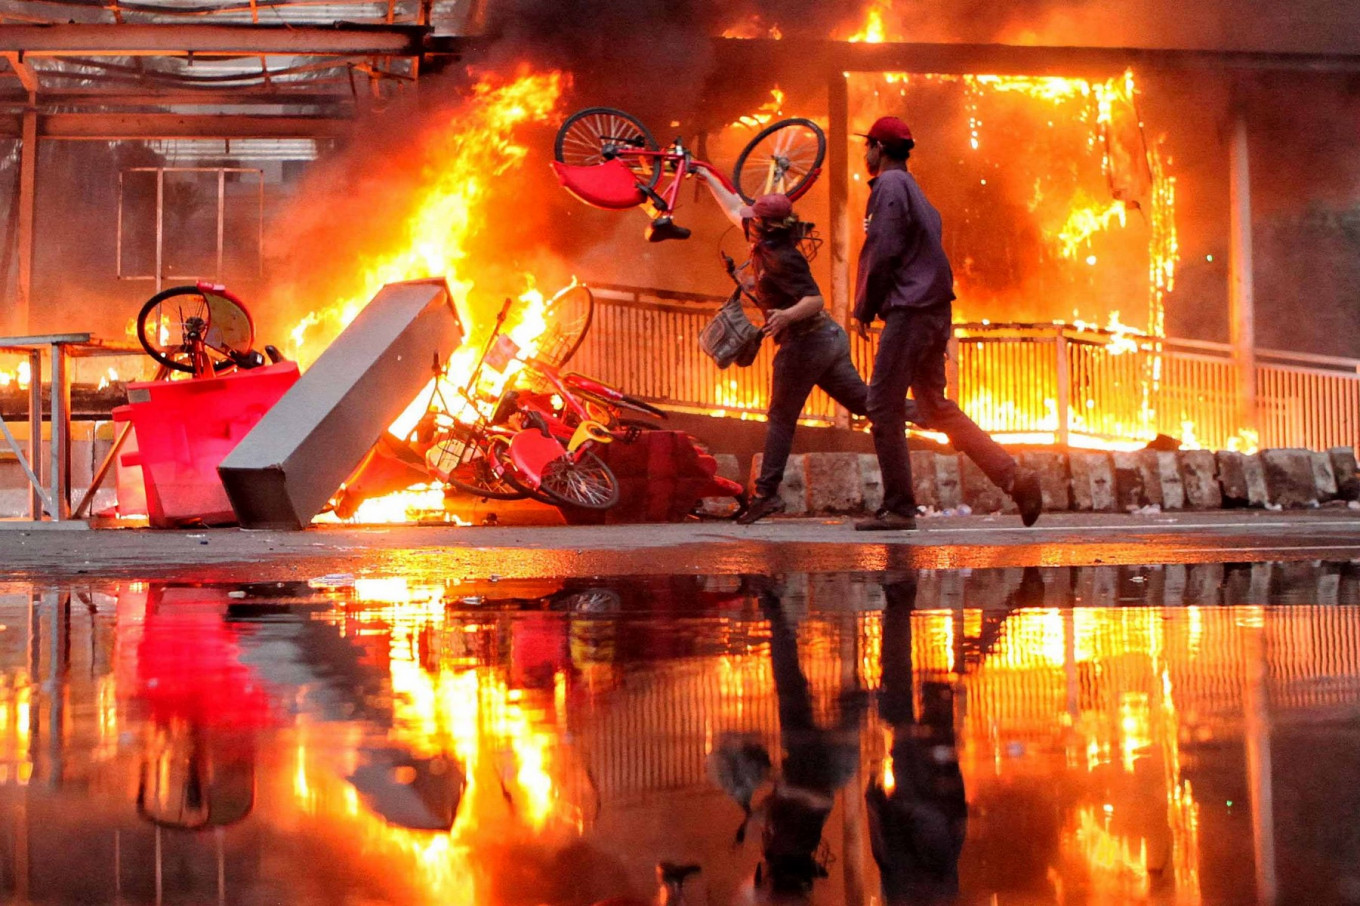 A fire rages at the Hotel Indonesia traffic circle Transjakarta bus shelter on Jl. MH Thamrin, Central Jakarta, during a clash between protesters and the police on Oct. 8. Thousands of workers and students held a rally to reject the Job Creation Law. JP/Seto Wardhana